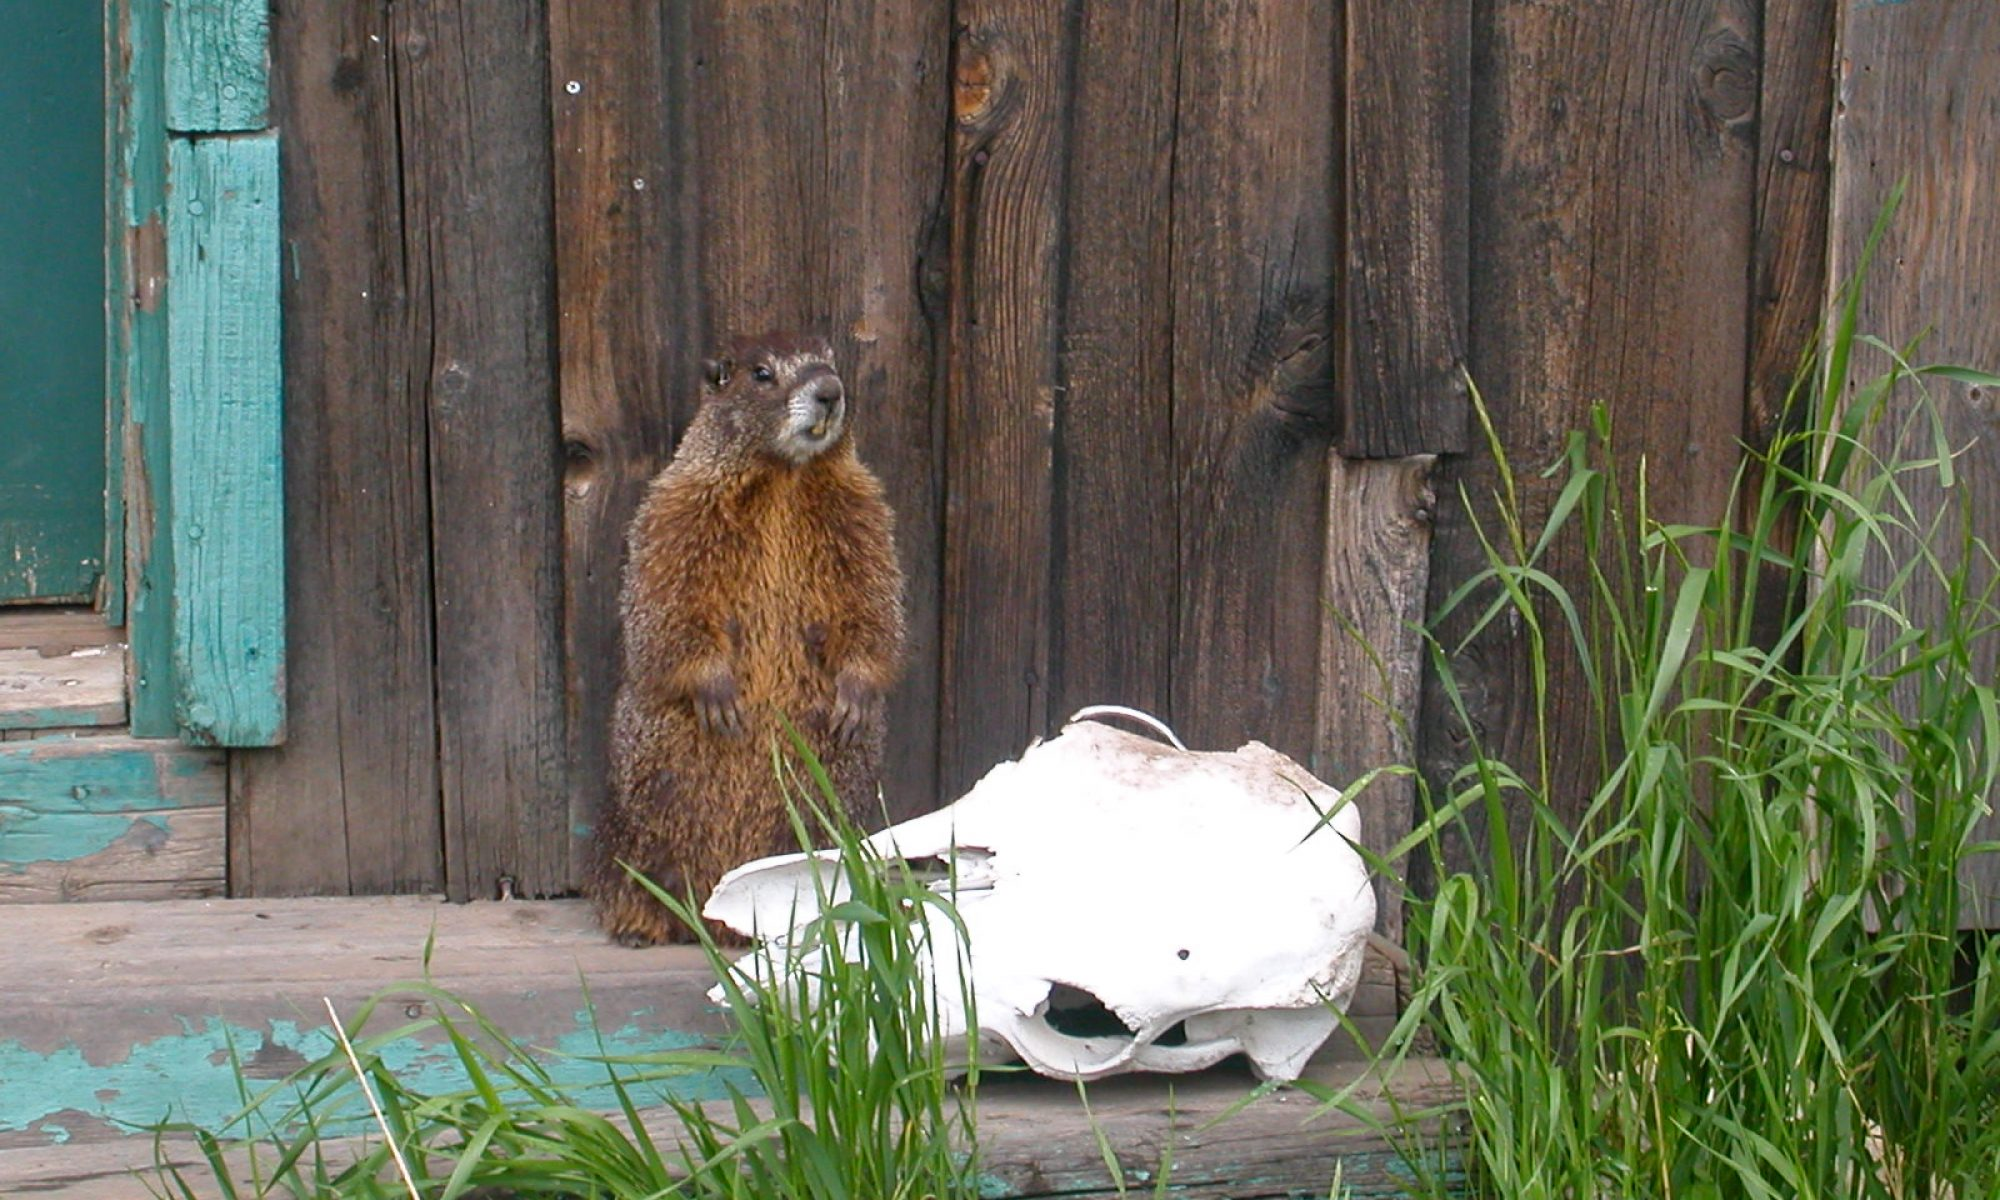 The yellow-bellied marmots